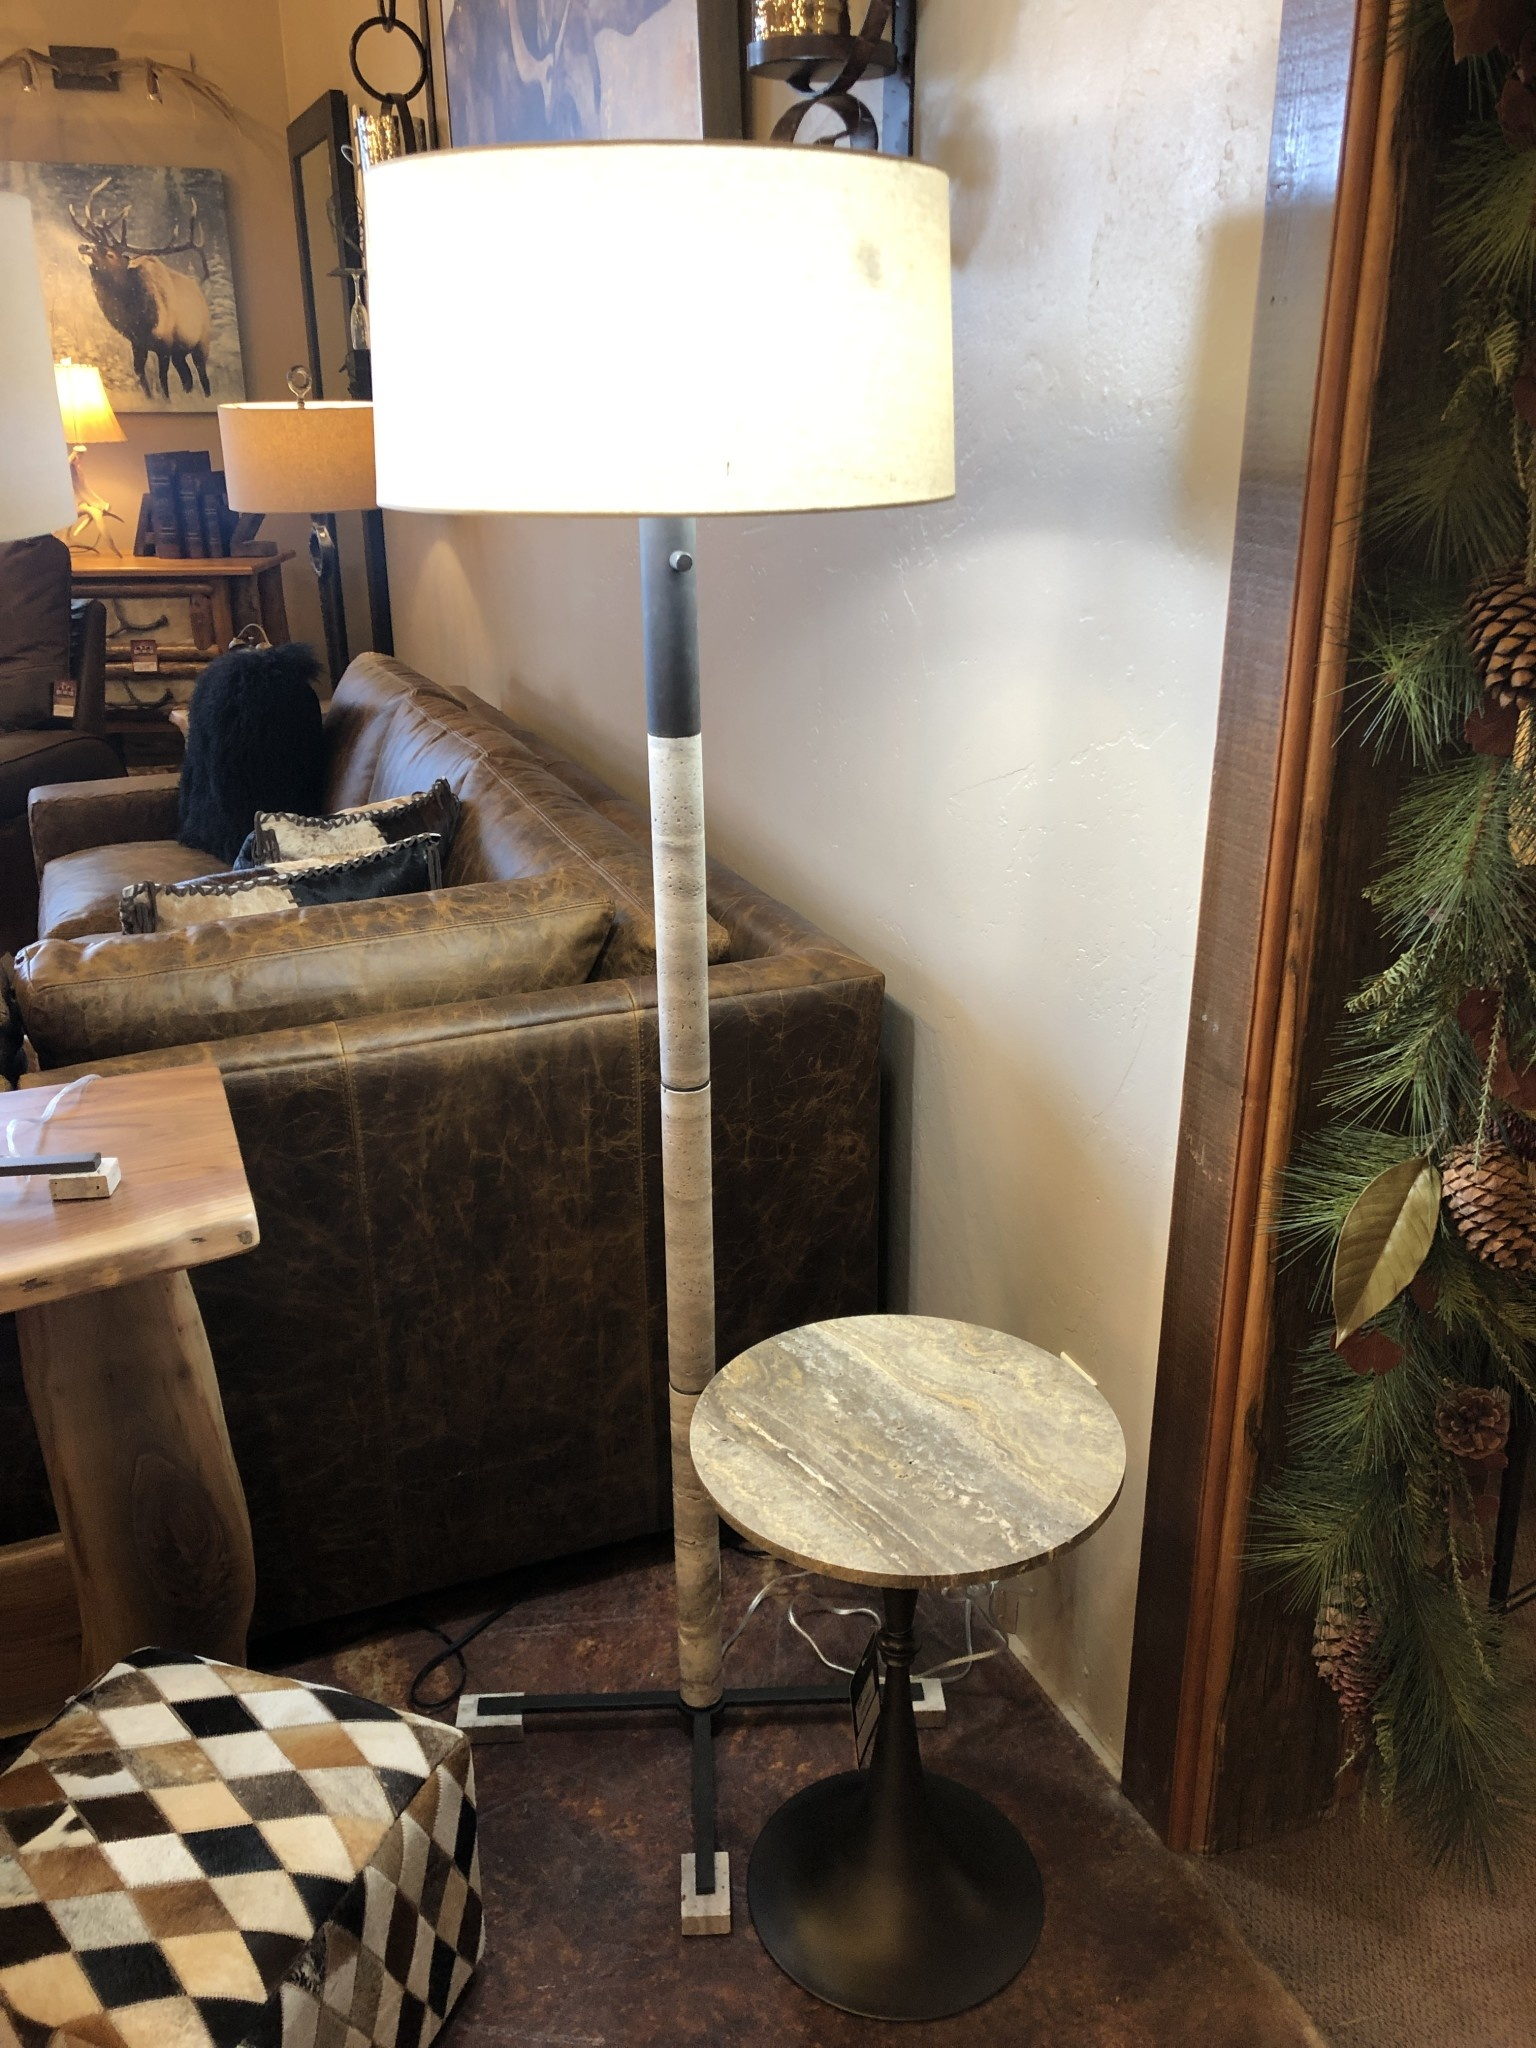 Uttermost Library Grey Stone Floor Lamp, 66H